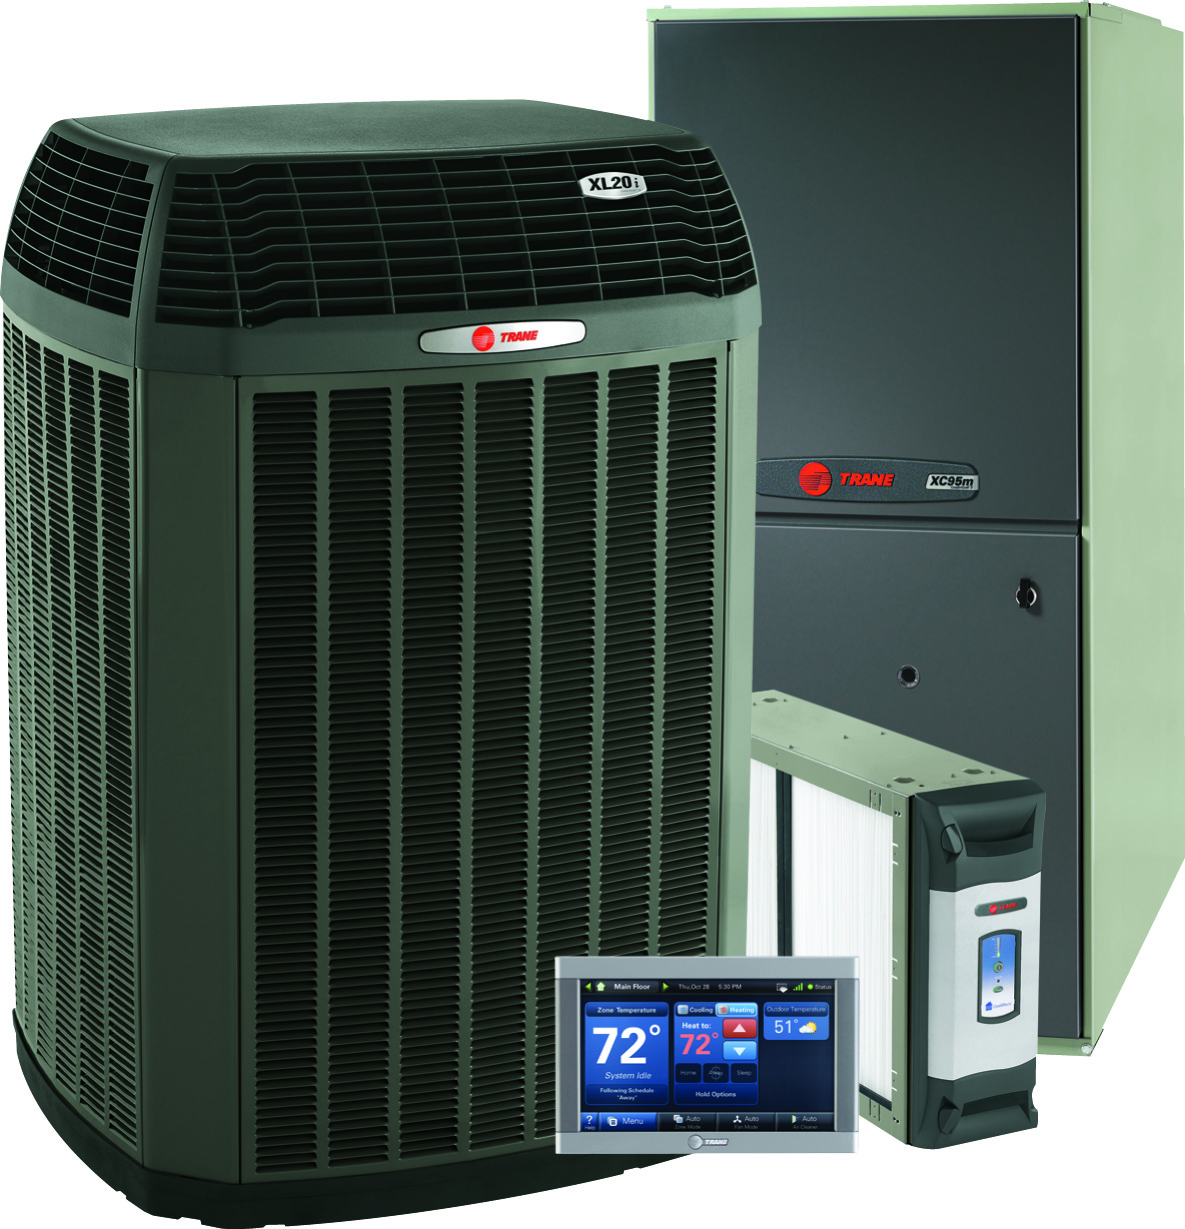 Get The Ultimate Air Conditioning Brisbane at The Best Price